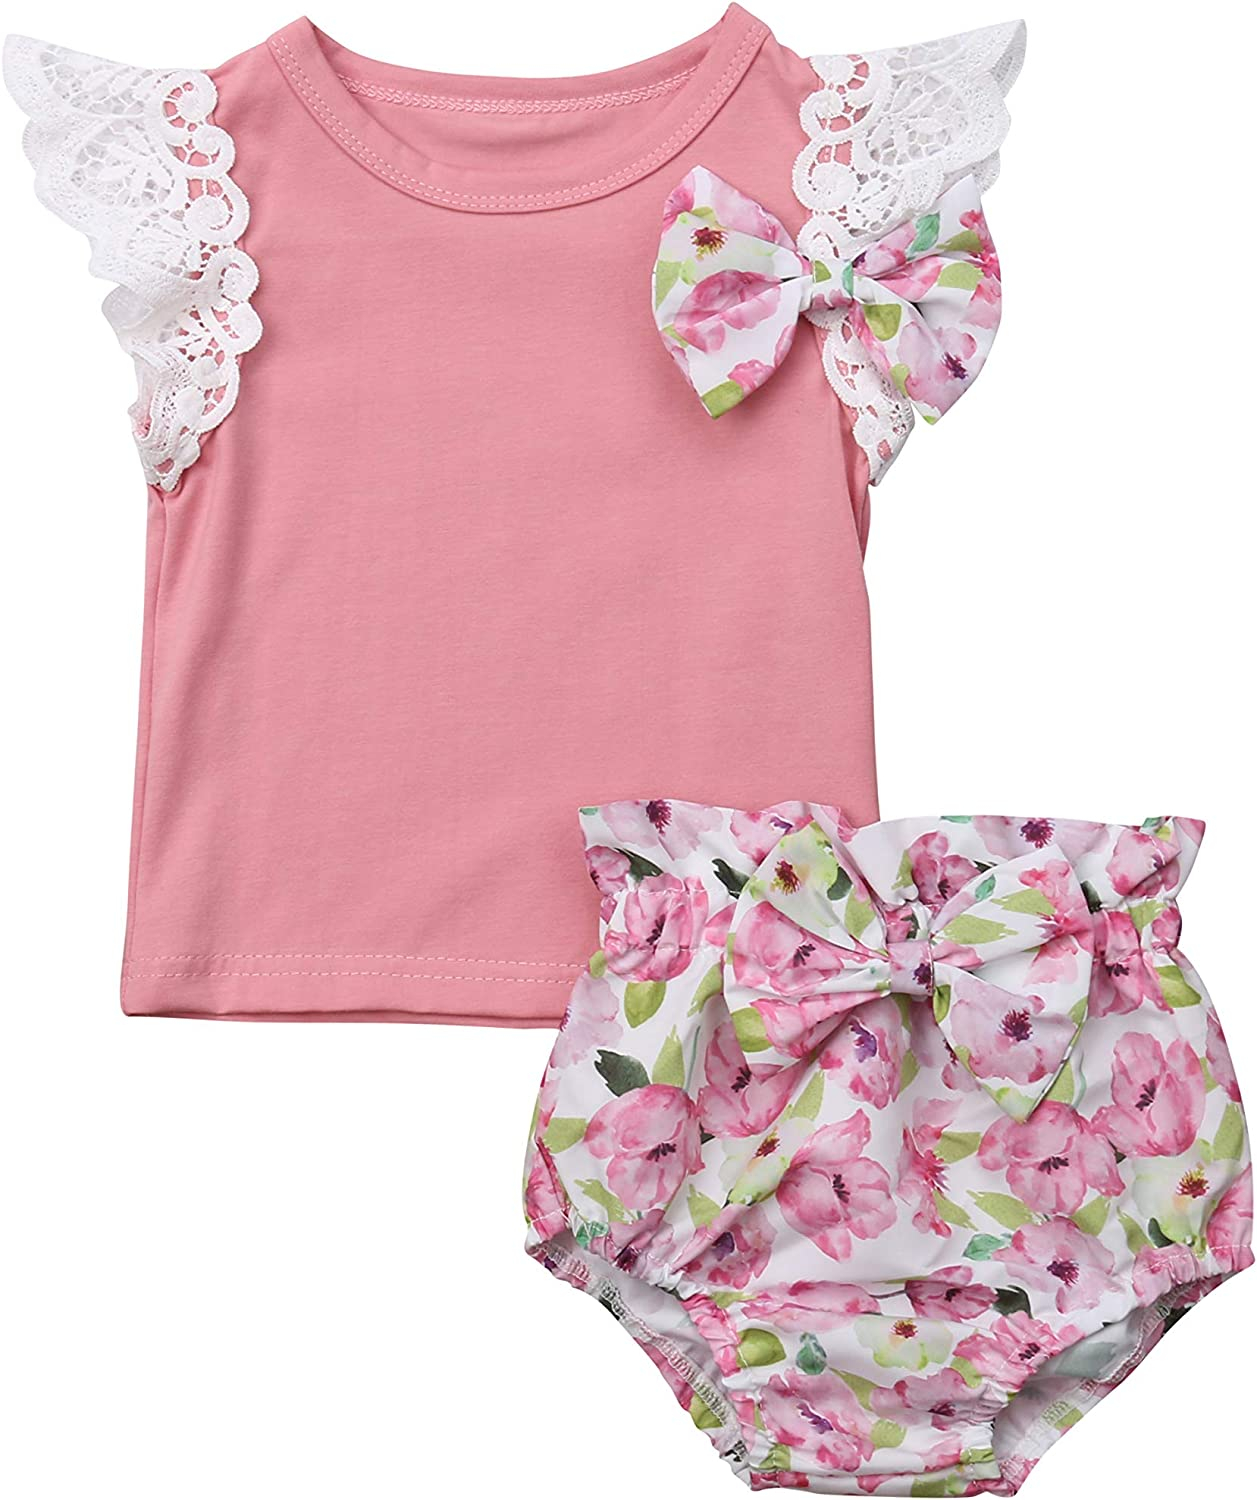 2PCS Kids Baby Girl Lace Ruffle T-Shirts Tops+Shorts Pants Bottom Summer Clothes with Bow